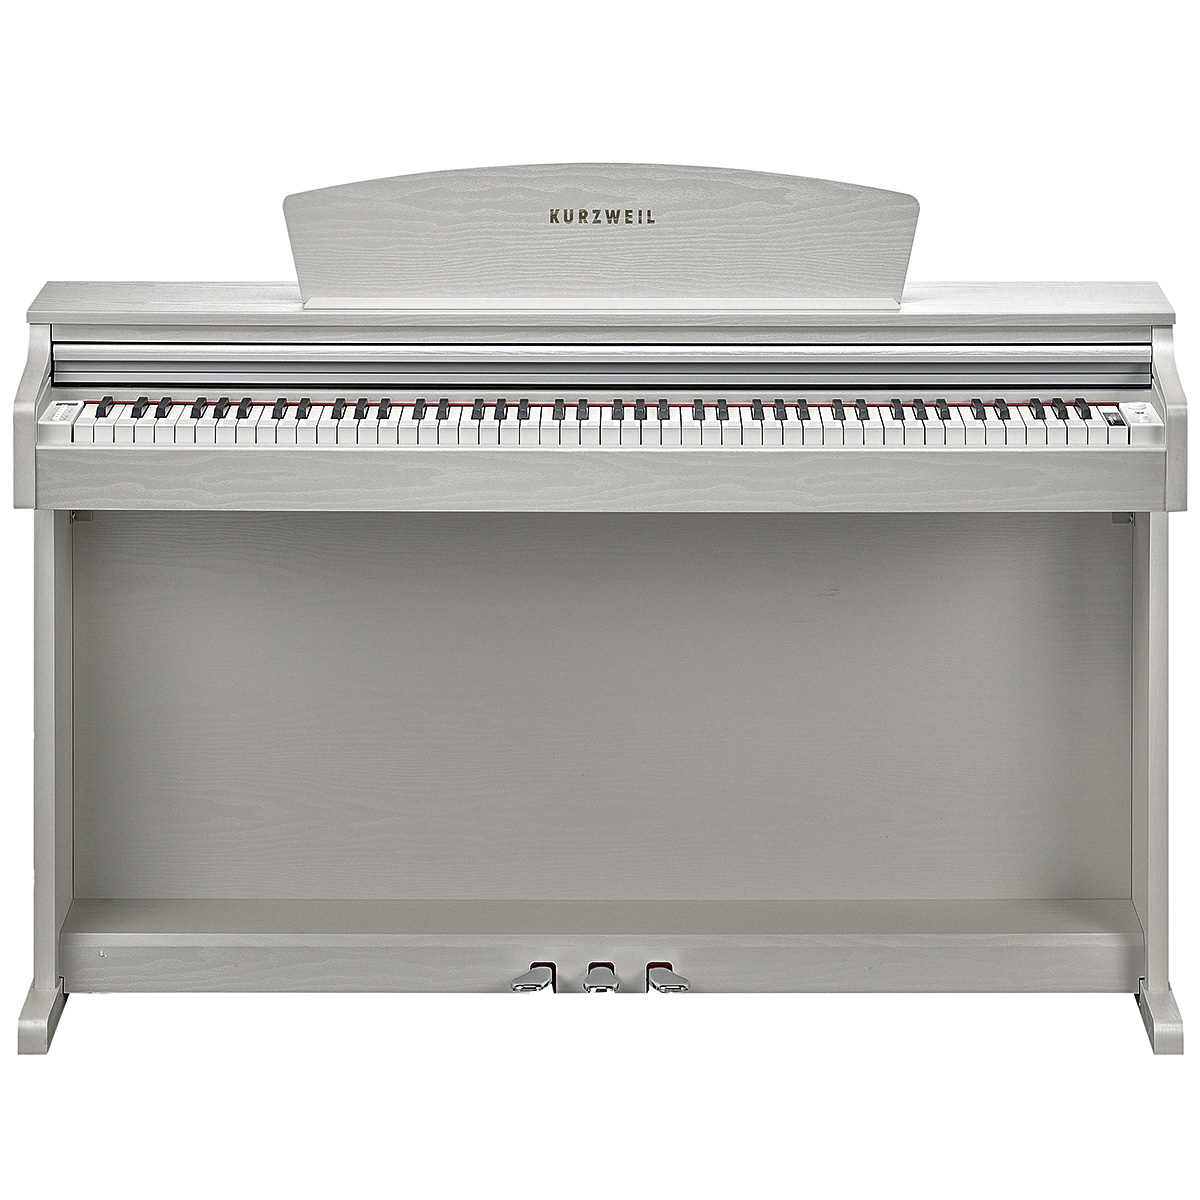 KURZWEIL M110WH: Fully-Weighted, 88 Note, Hammer-Action Digital Piano (White)